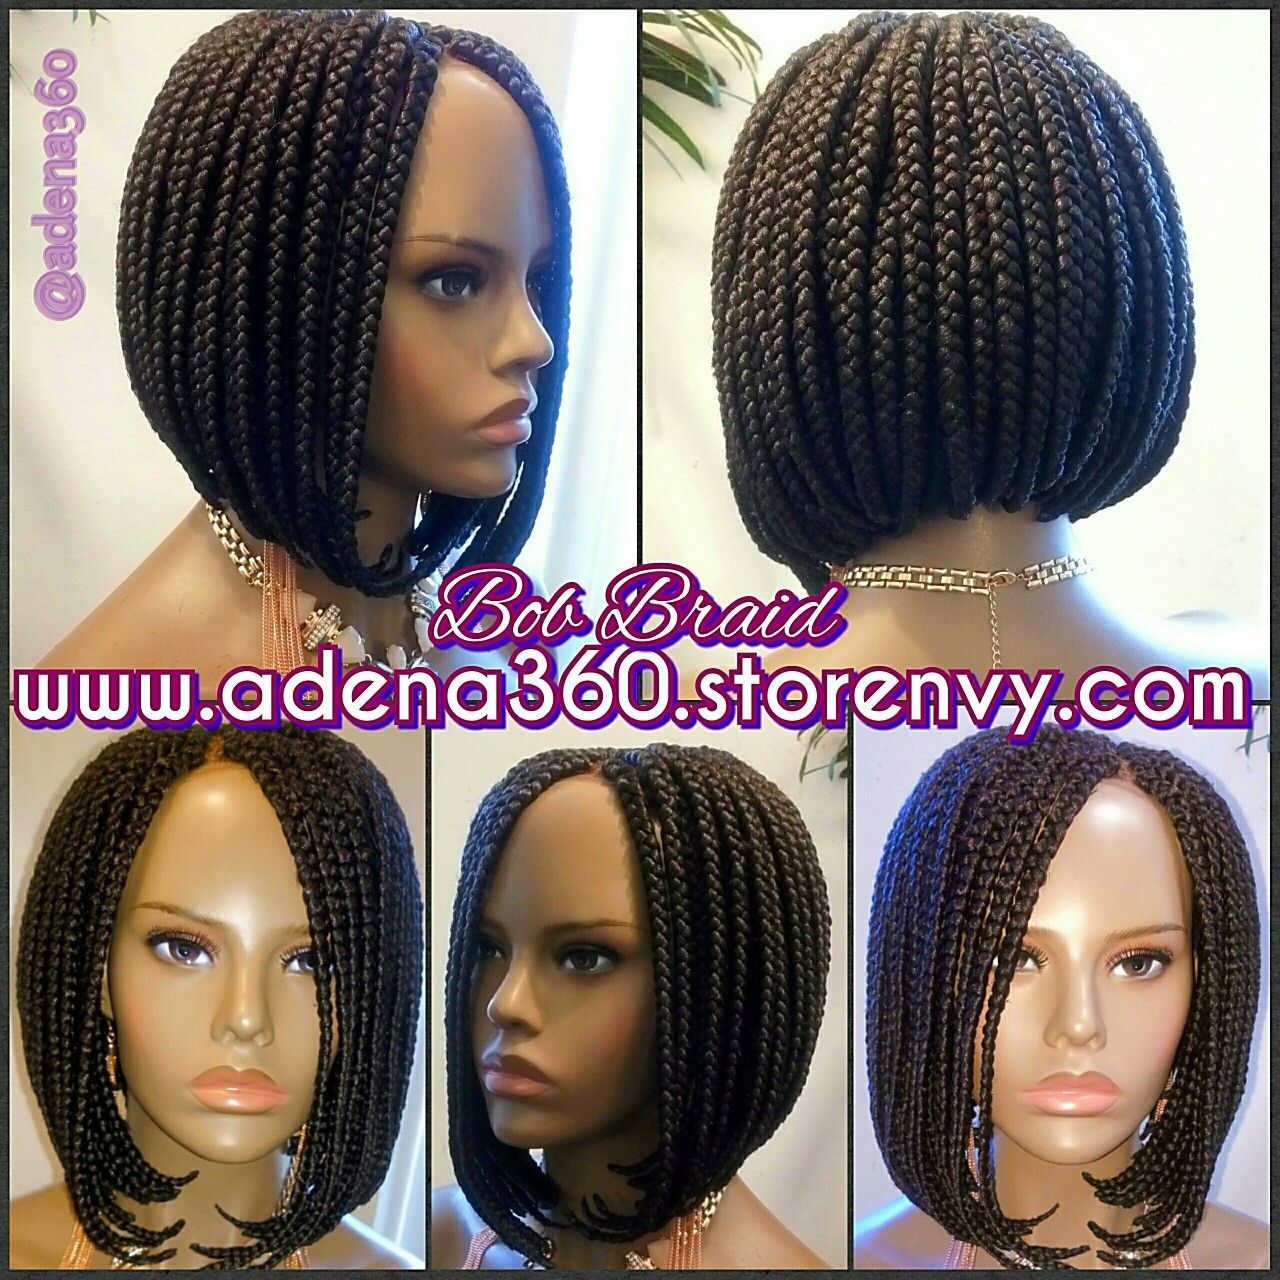 Take The Stress Off Your Hair And Order A Hand Made Medium Sized Bob Braid Wig Here Www Adena360 Nvy